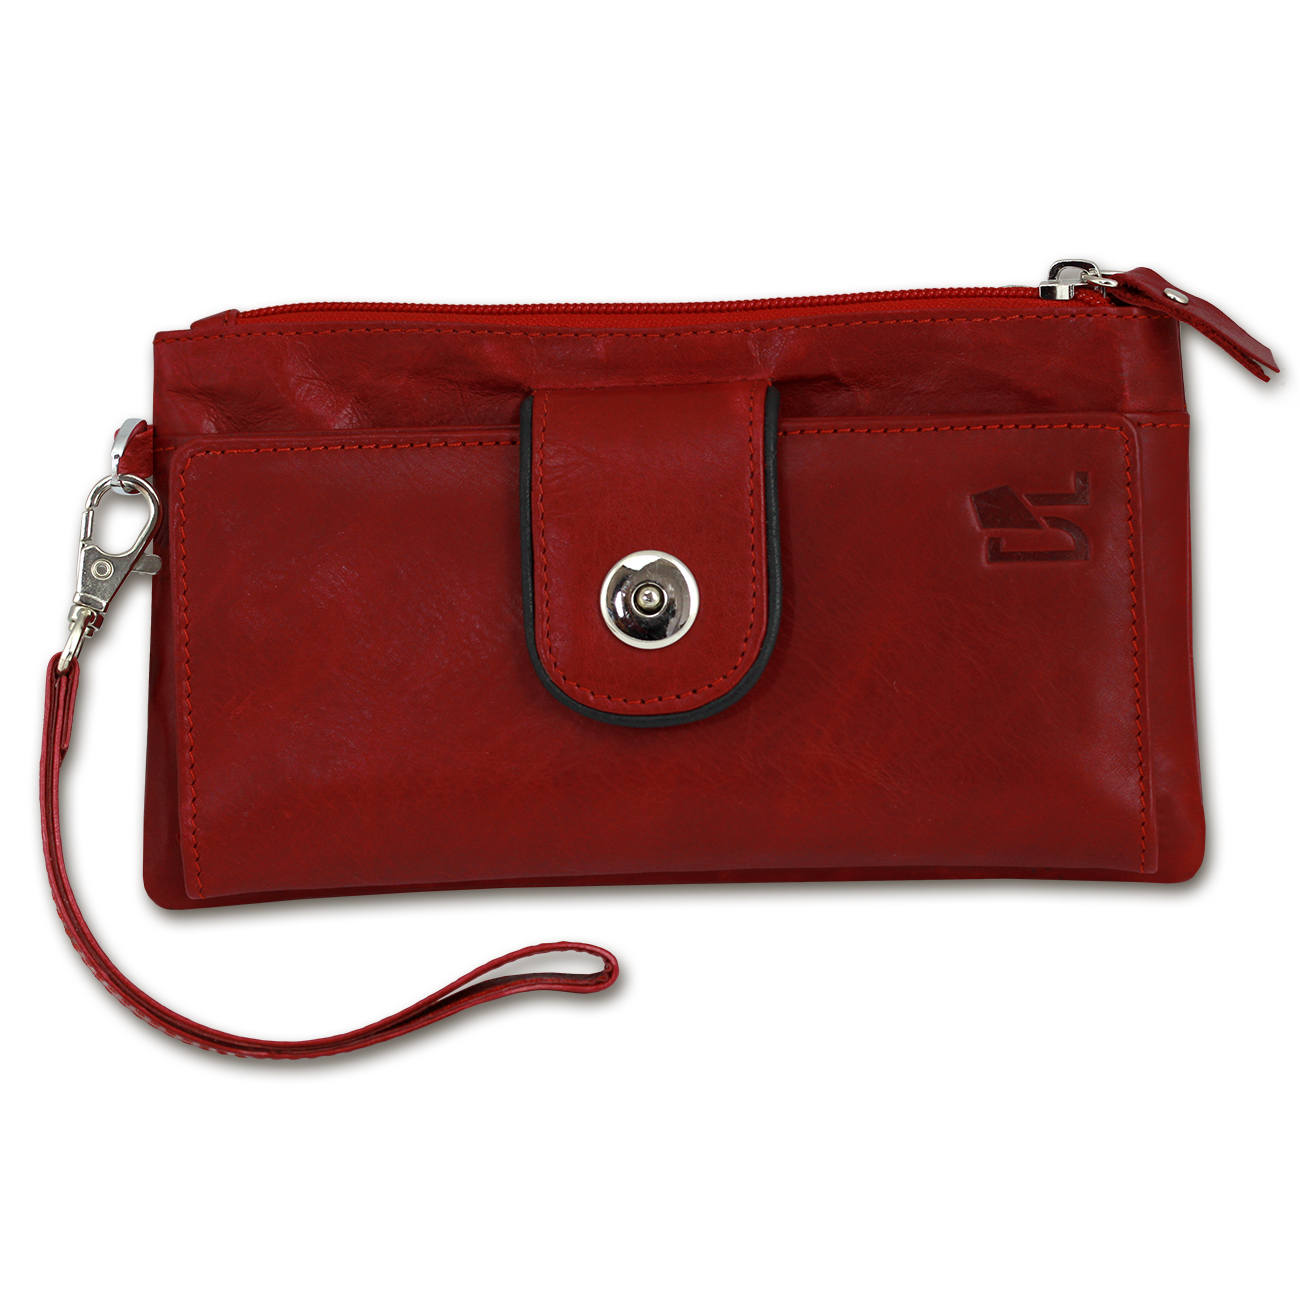 For formal events, an evening clutch made of leather, velvet, or beads is a nice complement to your dress. For a less formal look, opt for cotton, nylon, or canvas, which come in a wide variety of styles and colors perfect for the office, coffee with a friend, or just running errands.